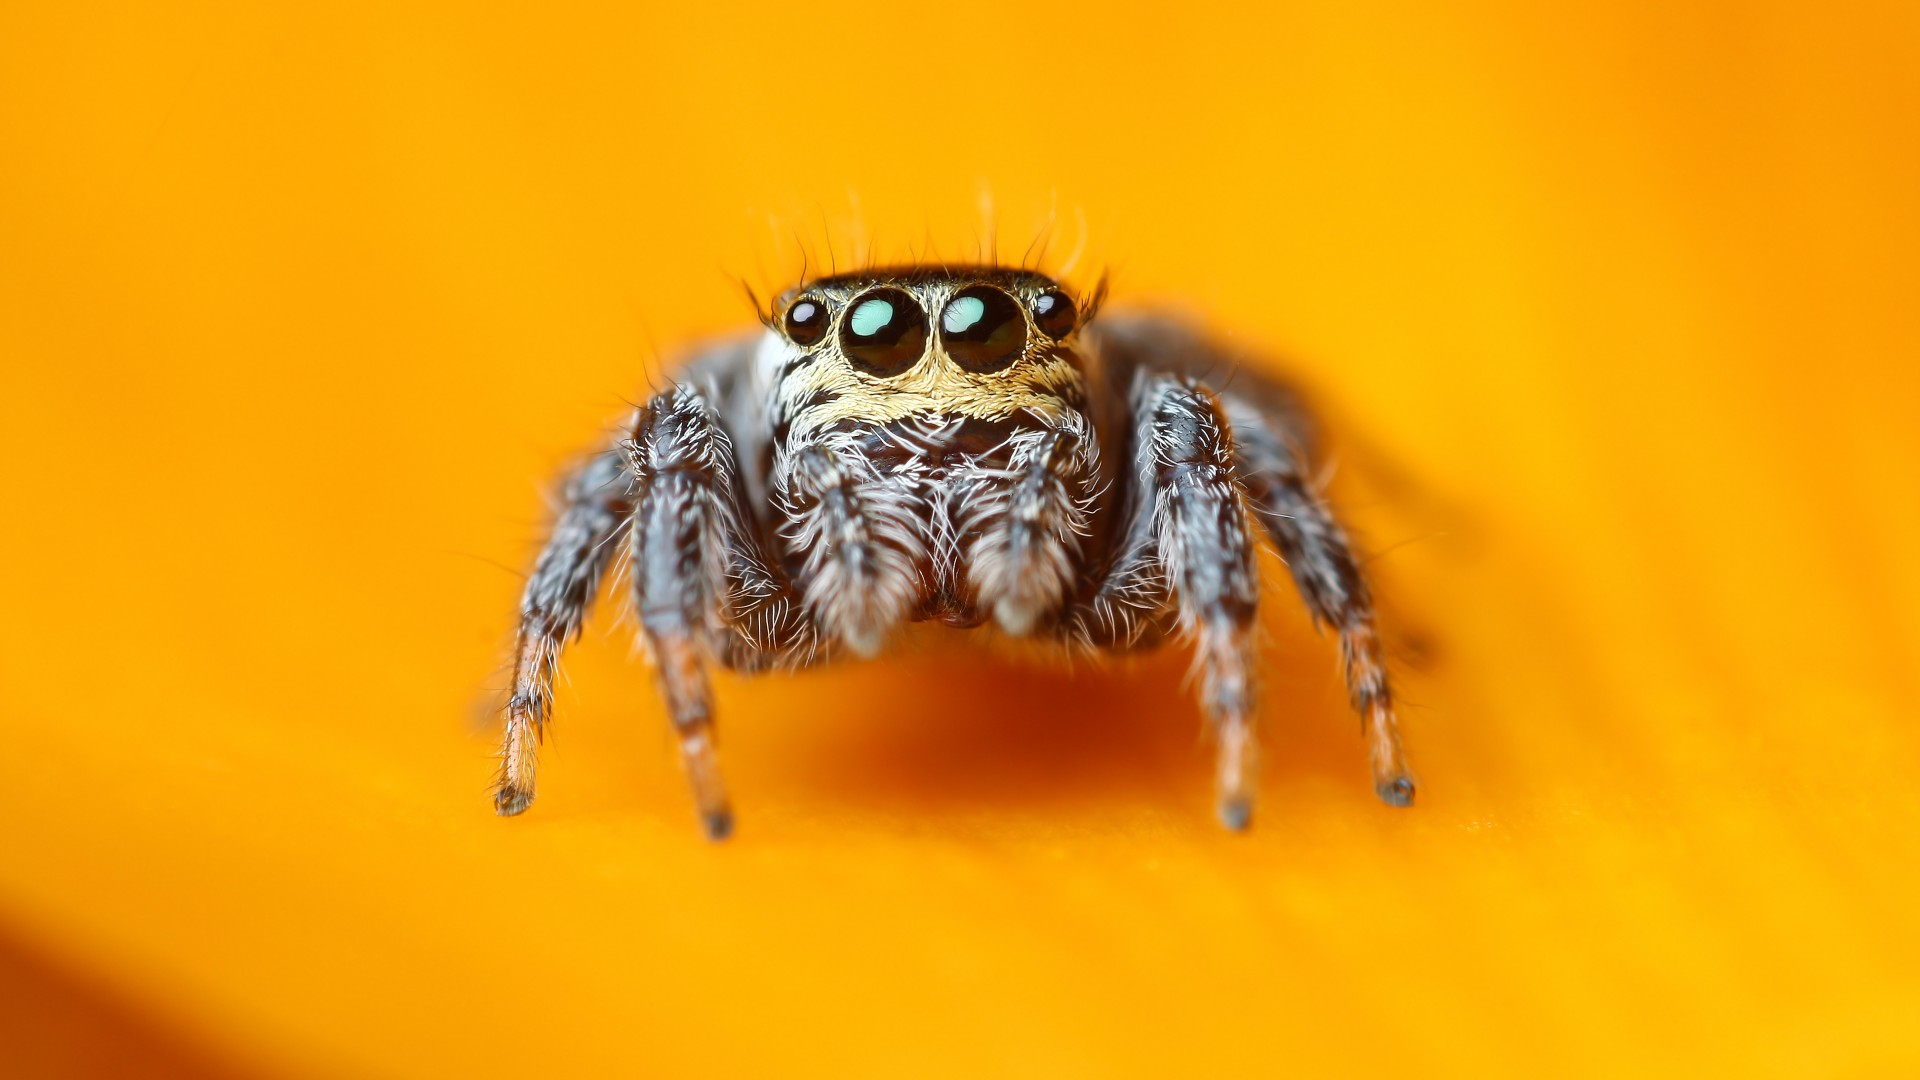 Jumping Spider, 5k, 4k wallpaper, macro, black, eyes, yellow, insects, arachnid, cute (horizontal)